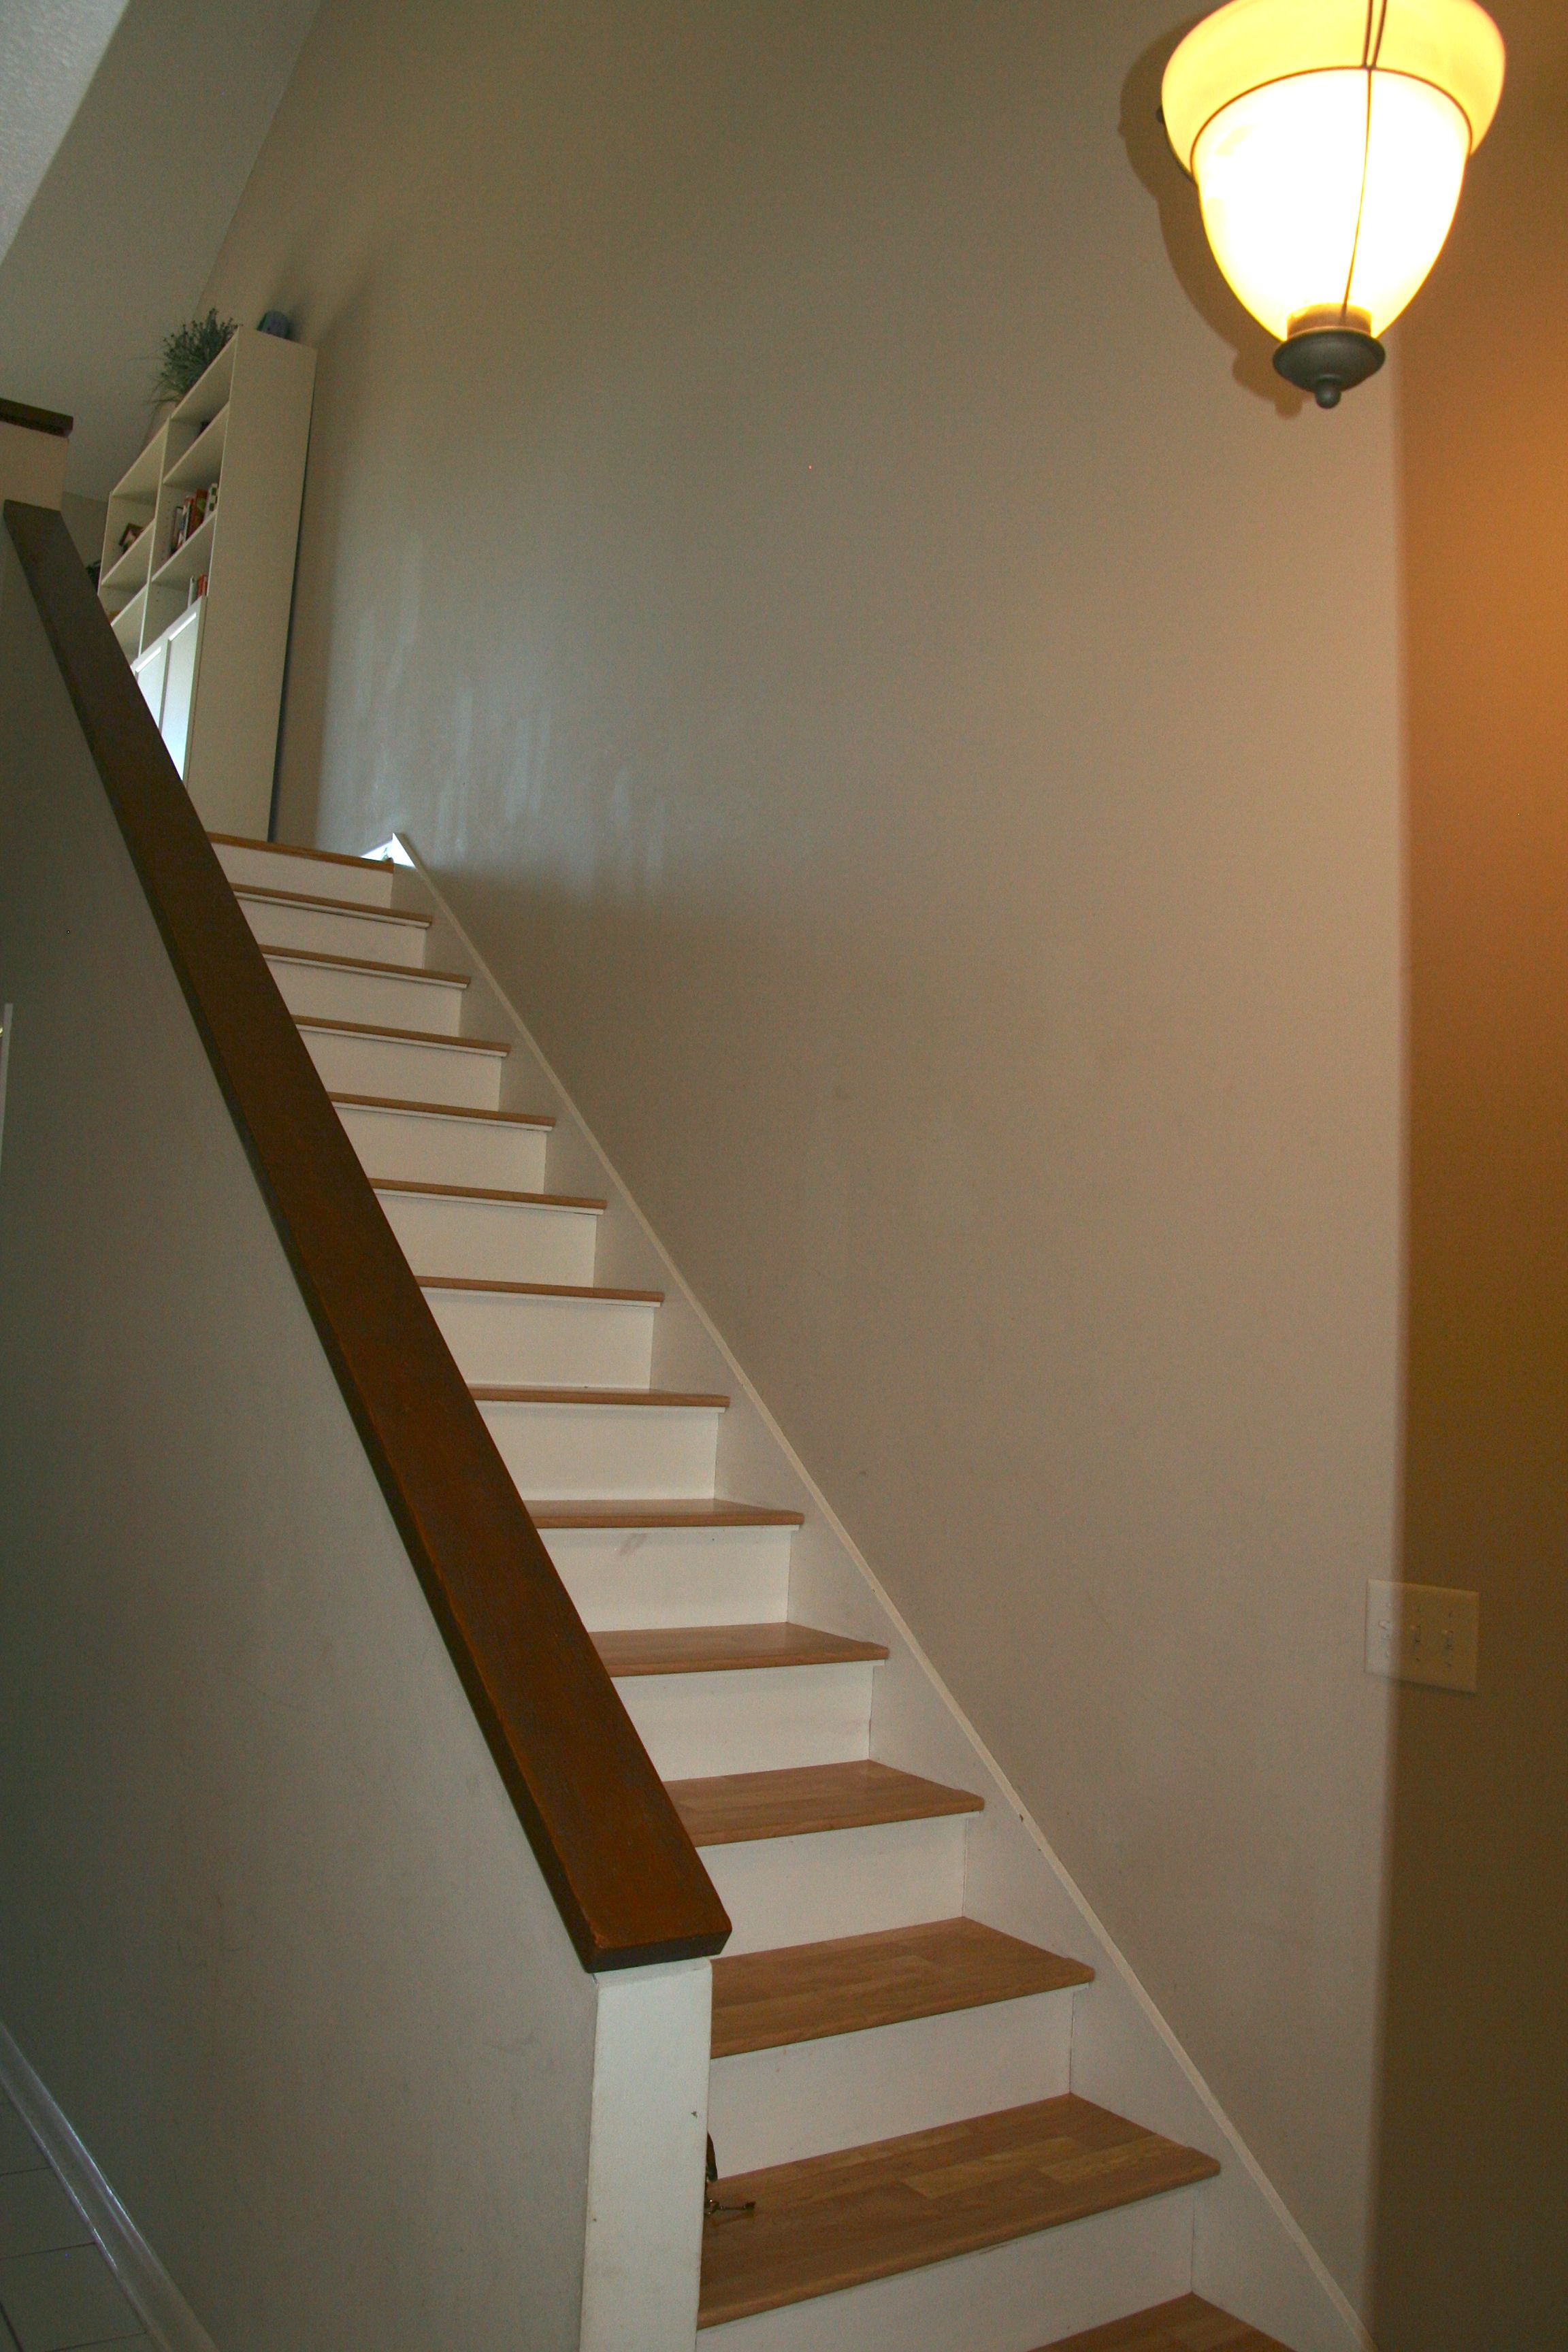 Head downstairs to the bedroom level.